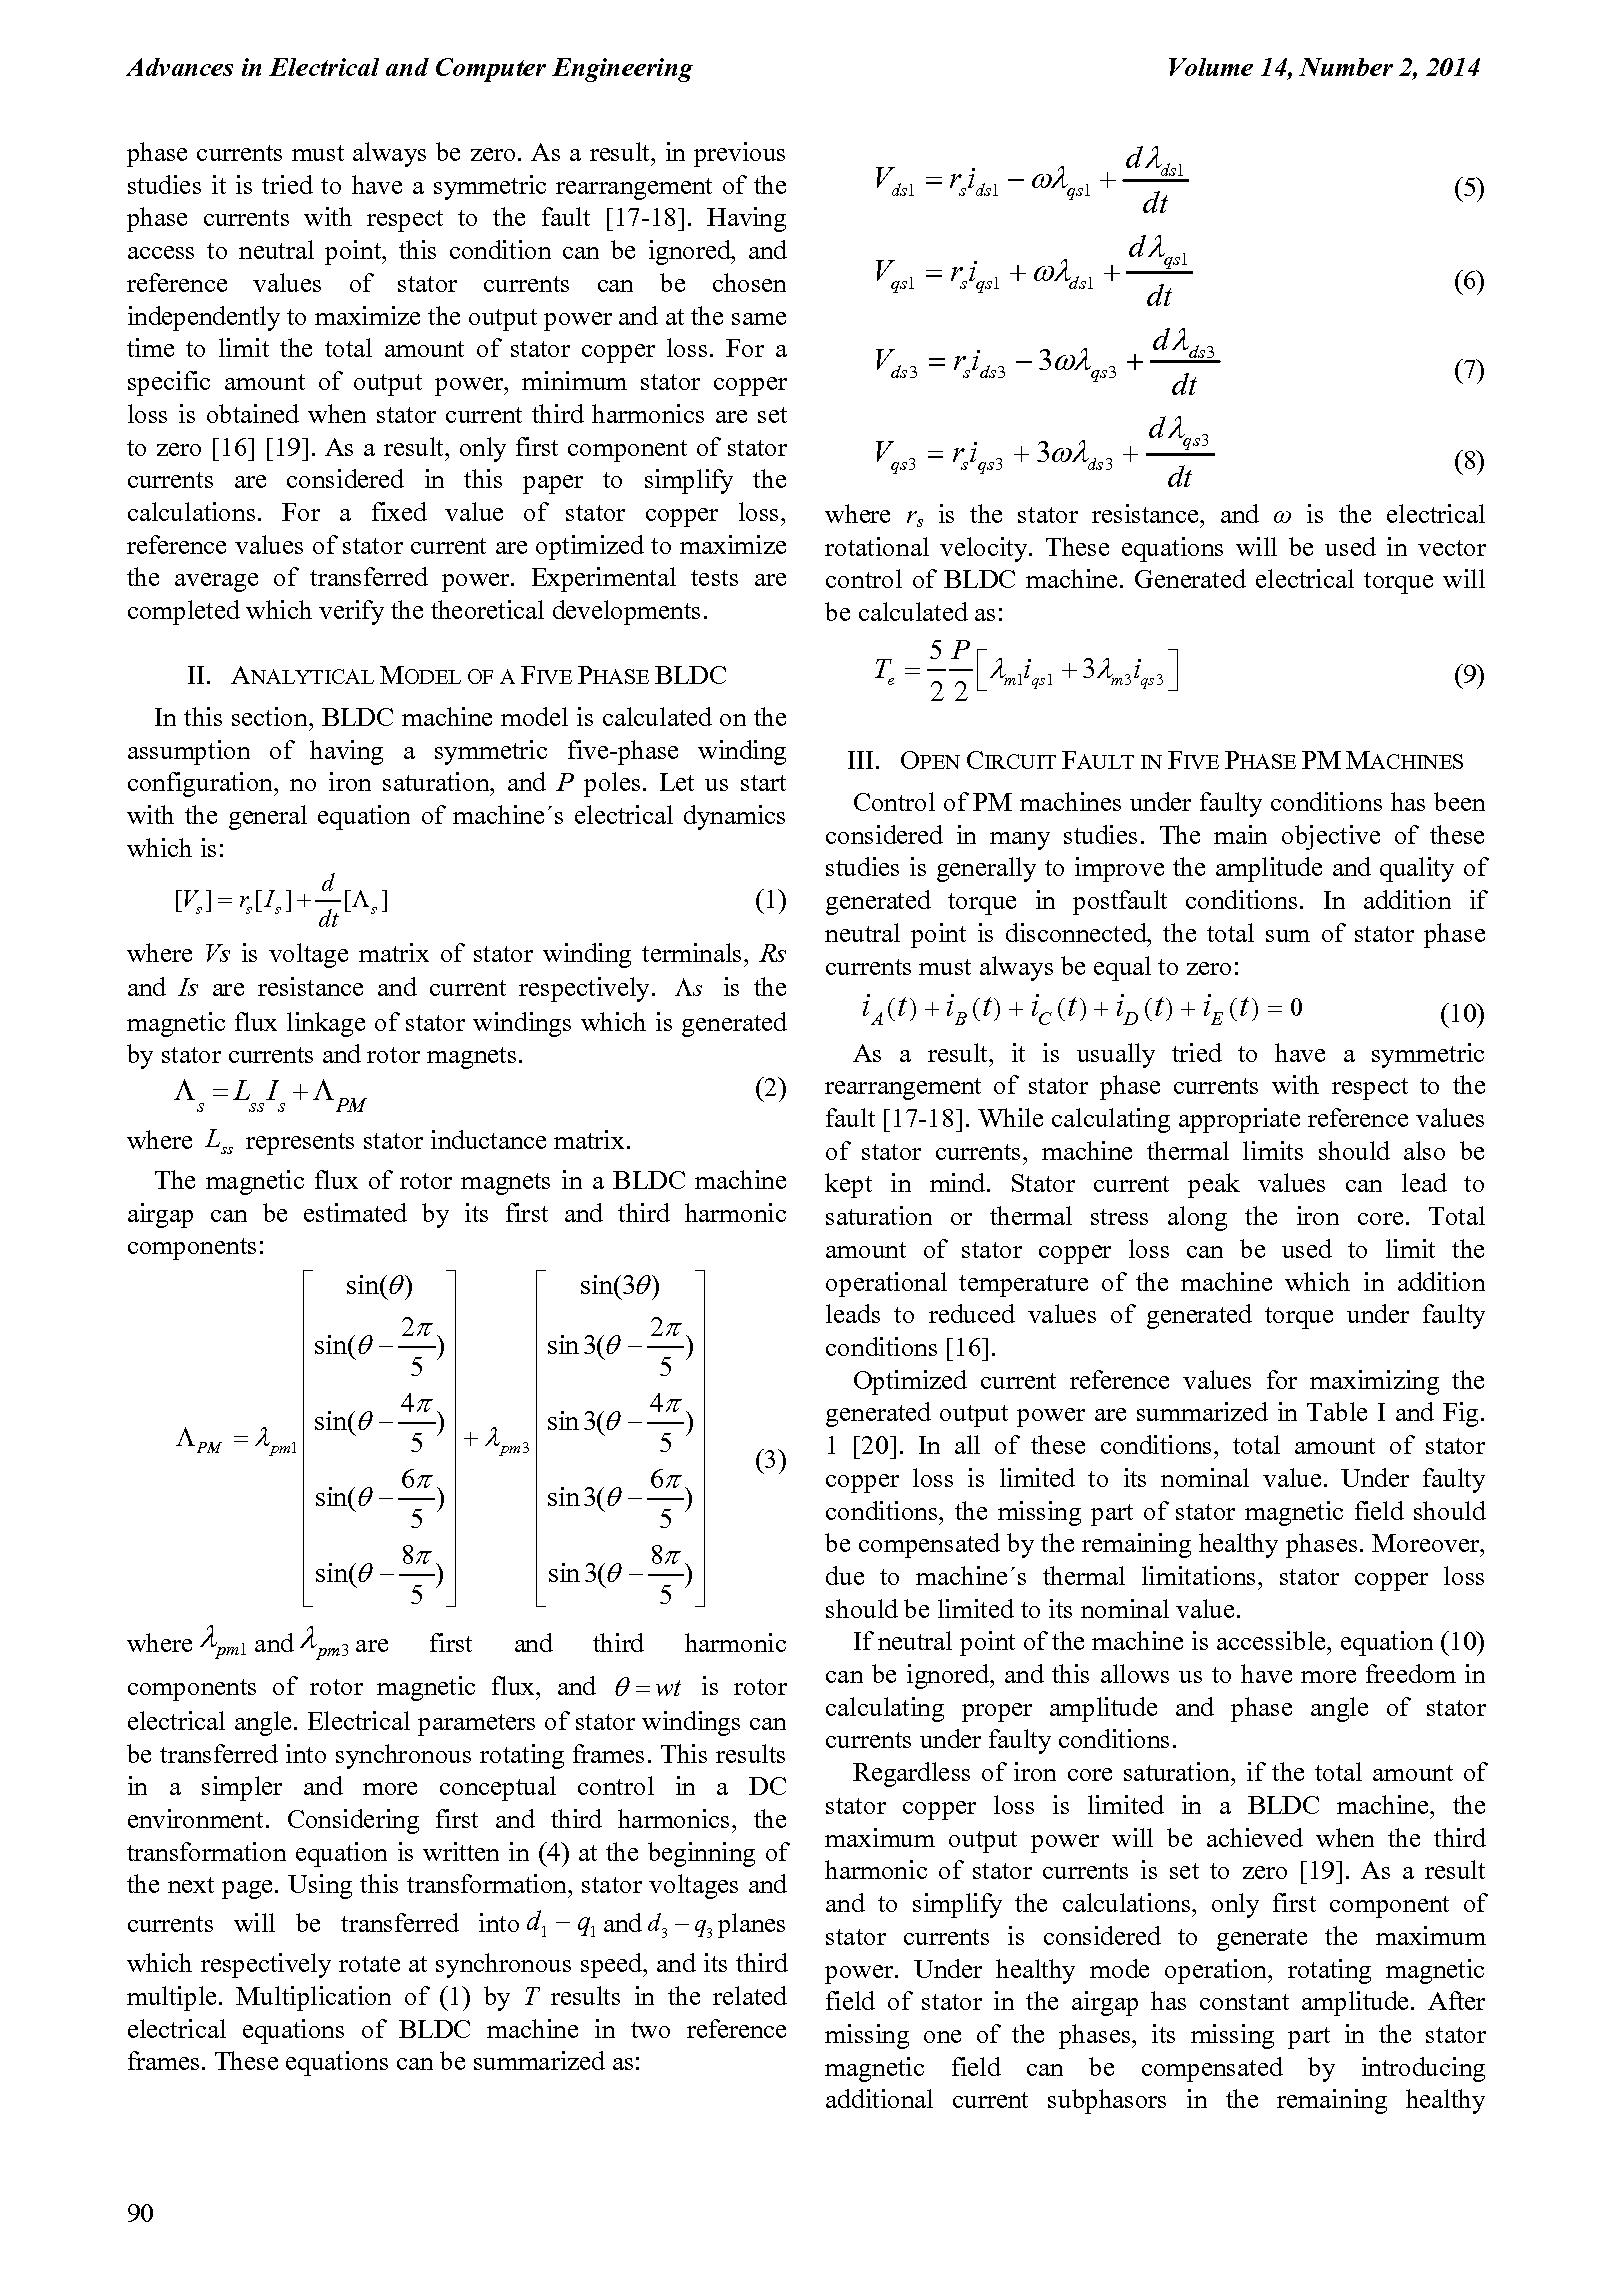 PDF Quickview for paper with DOI:10.4316/AECE.2014.02015